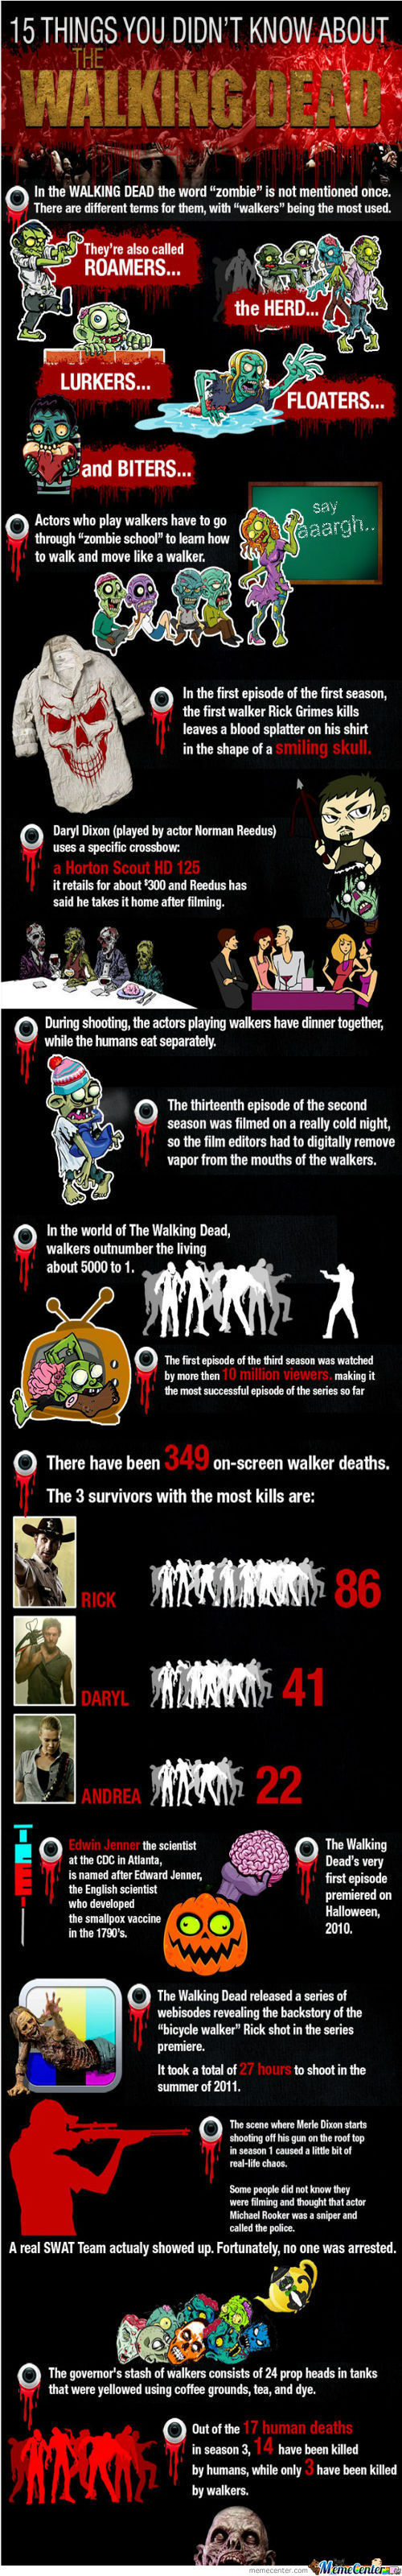 Some Of The Walking Dead Facts